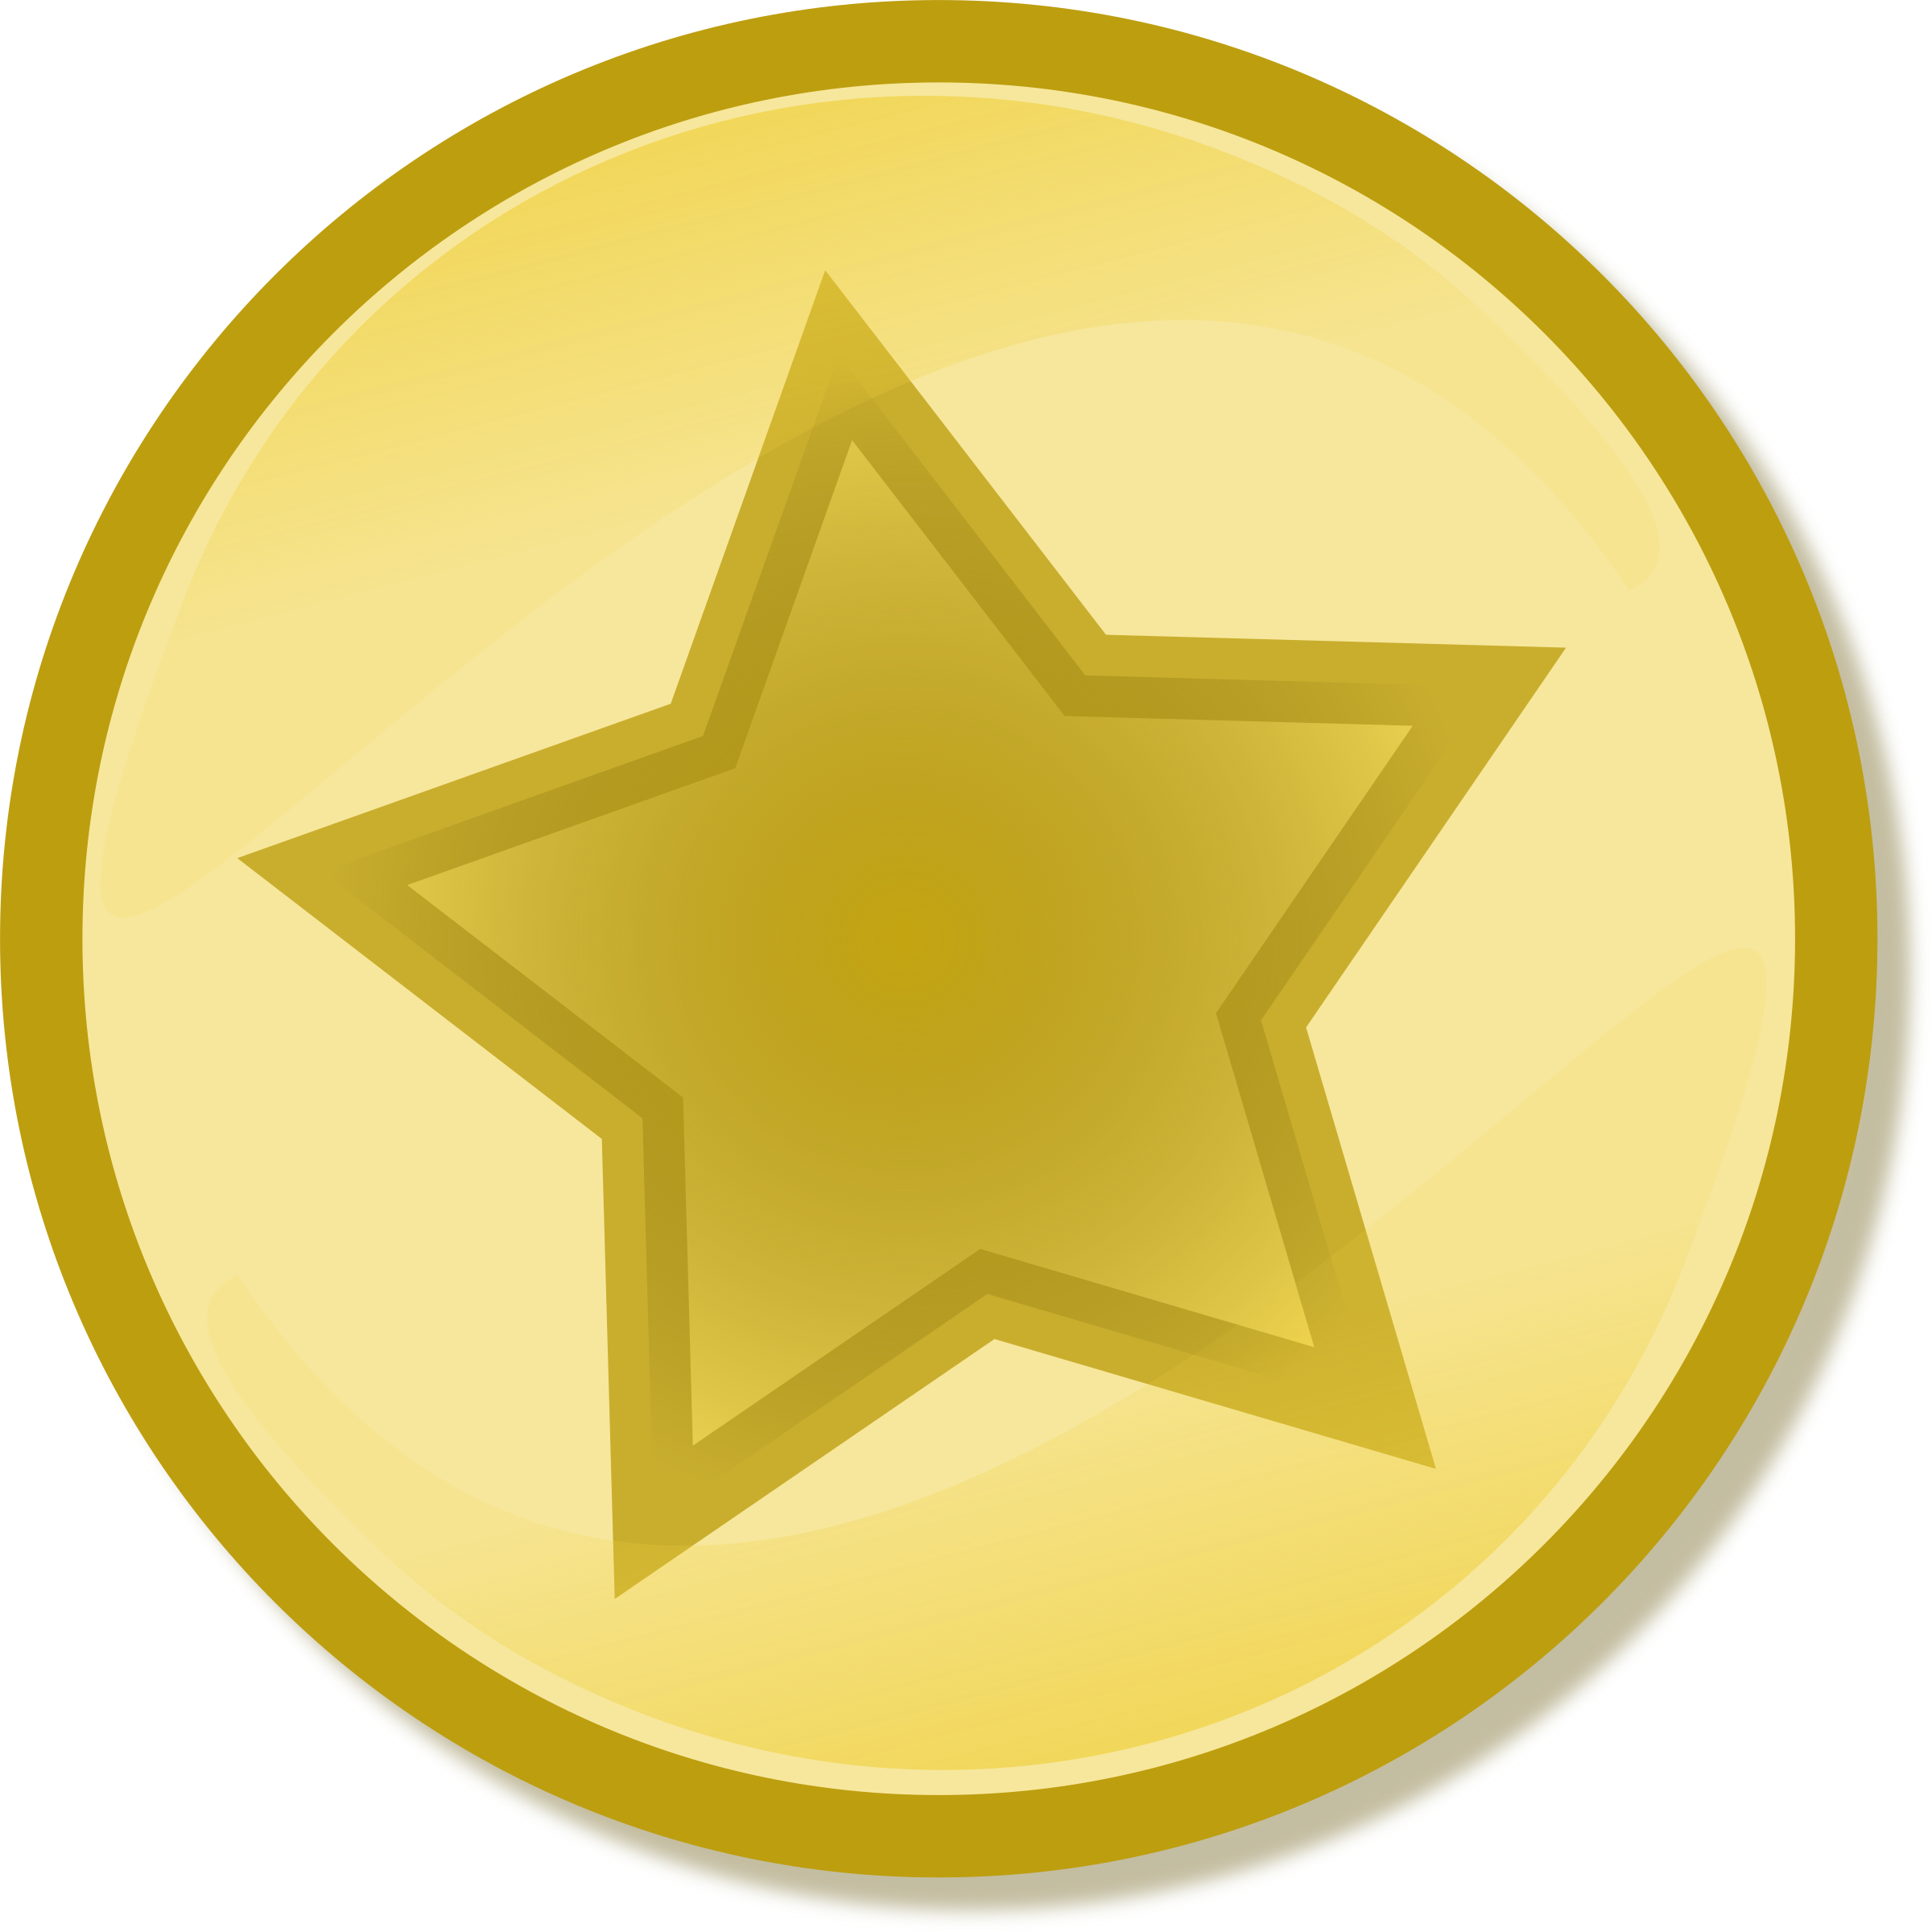 2400x2400 Circle Star Clipart, Explore Pictures